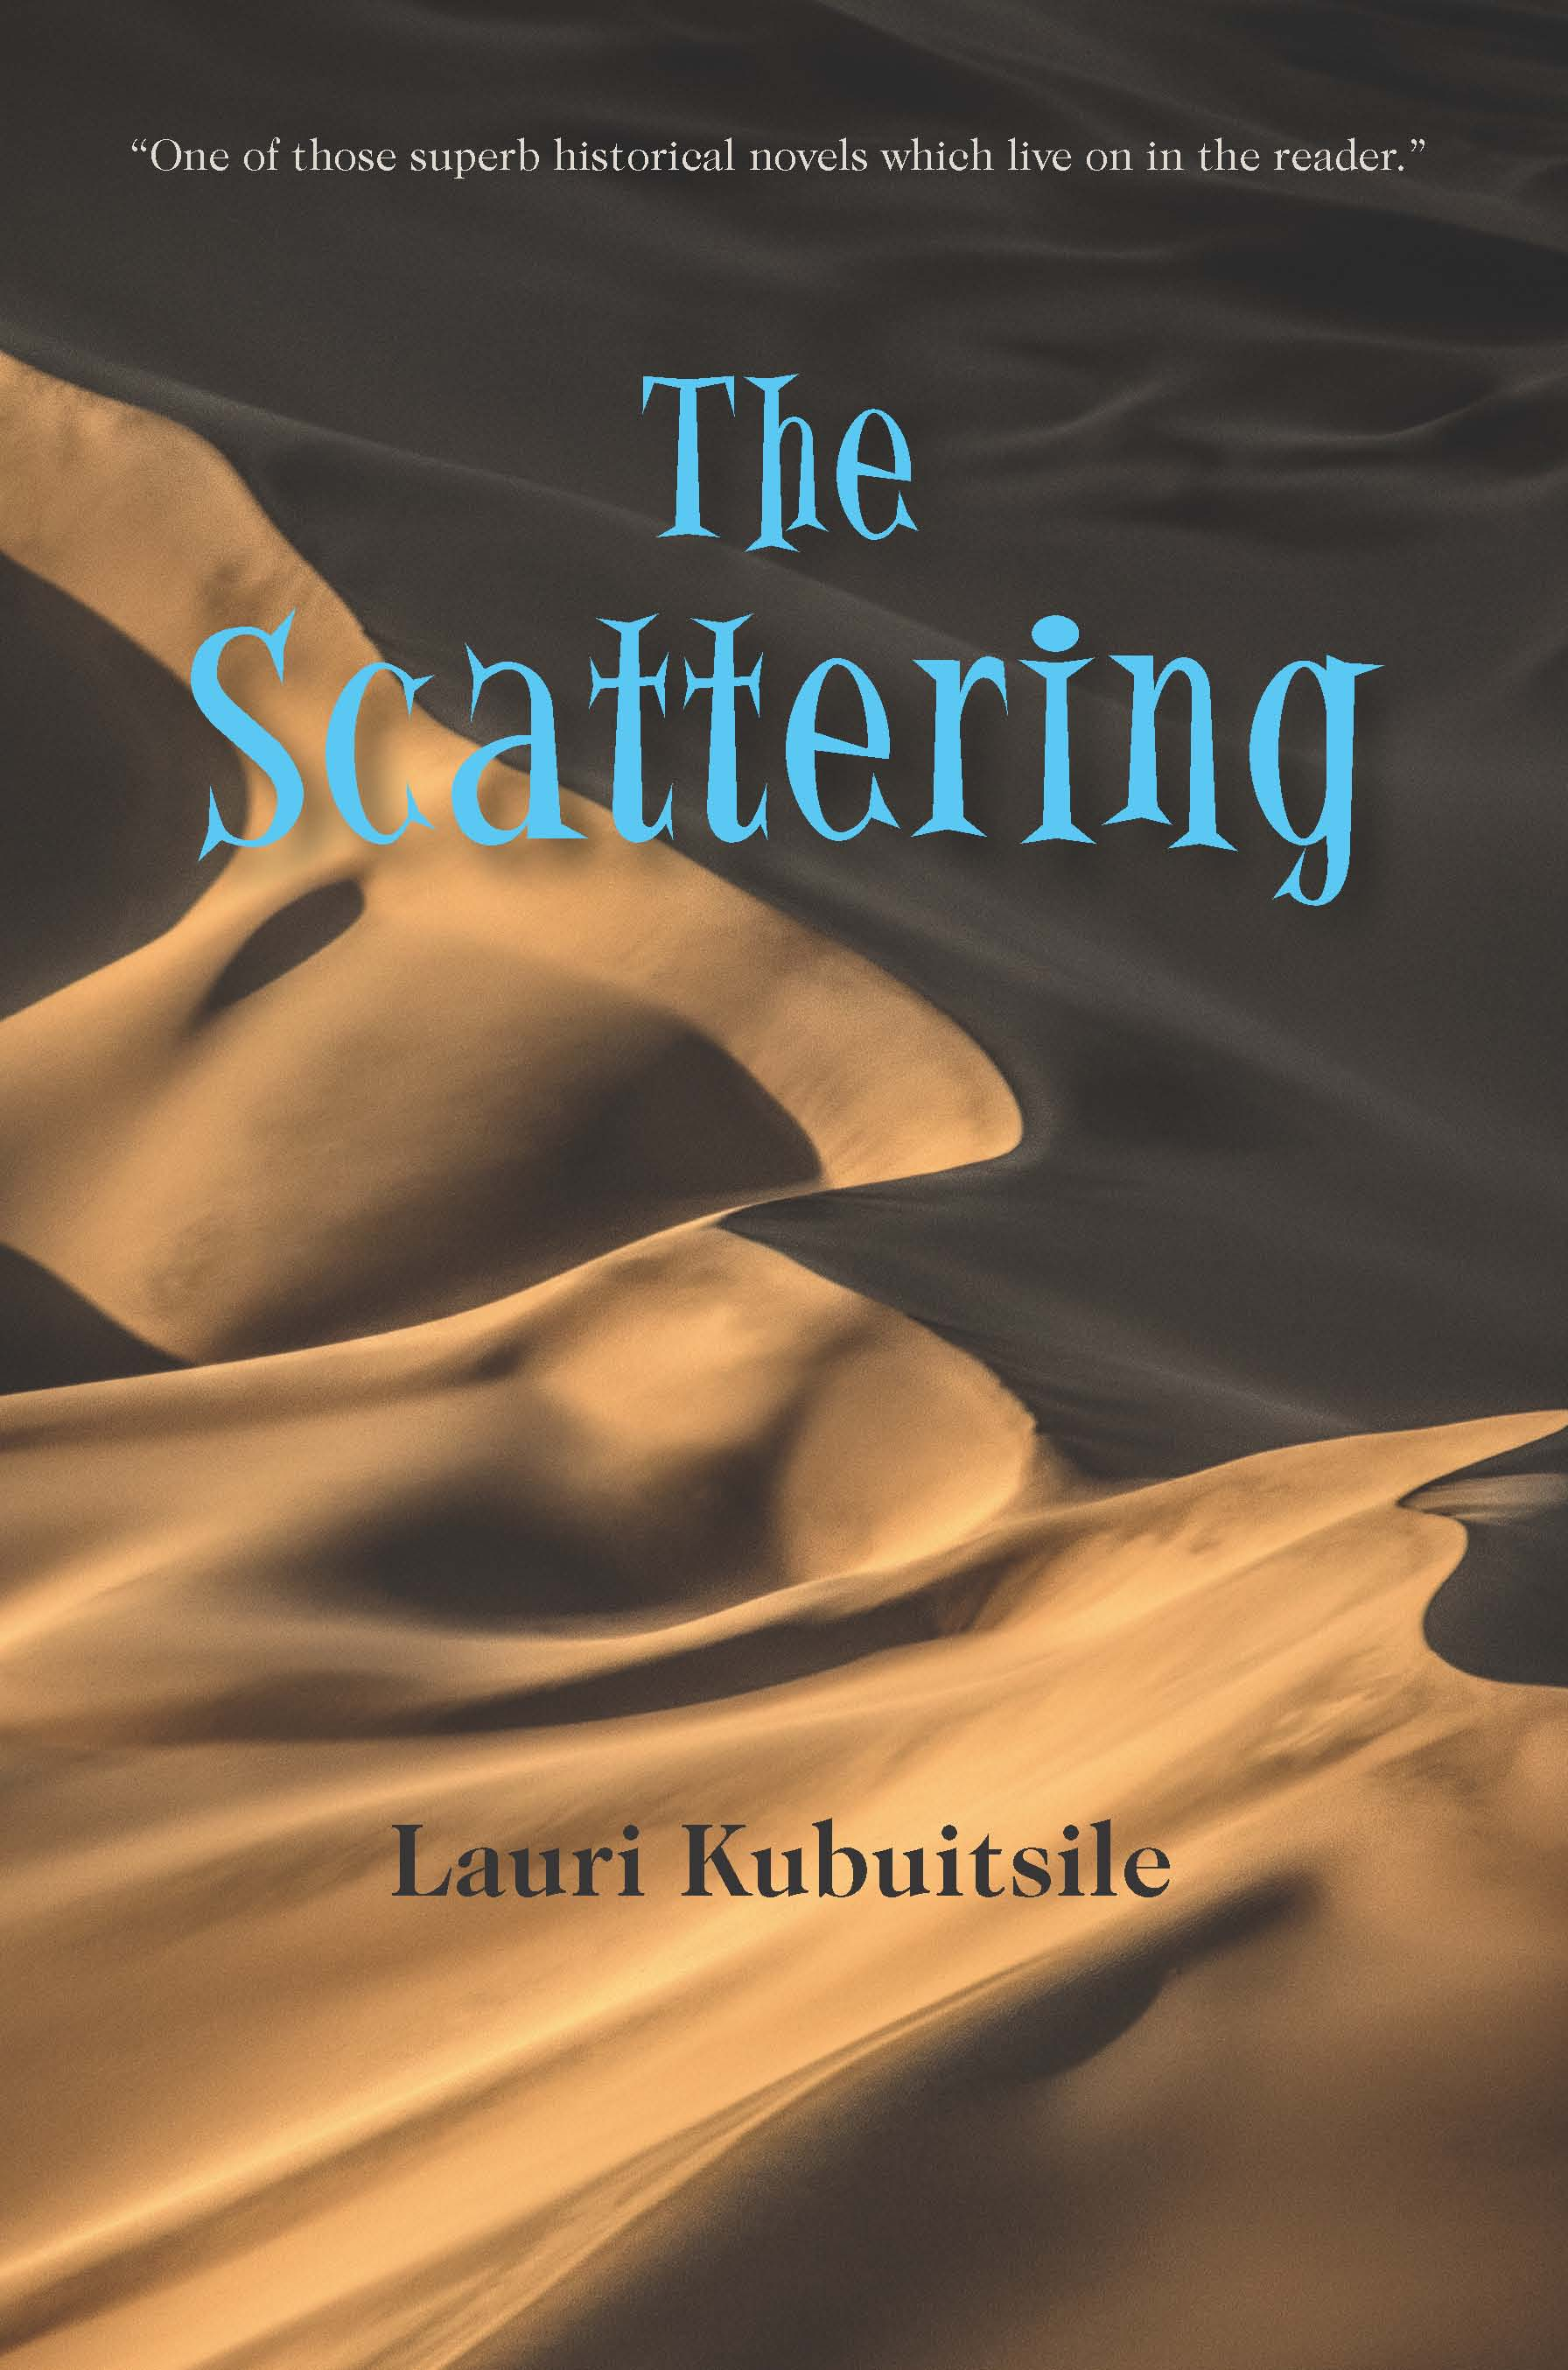 The Scattering:  by Lauri  Kubuitsile